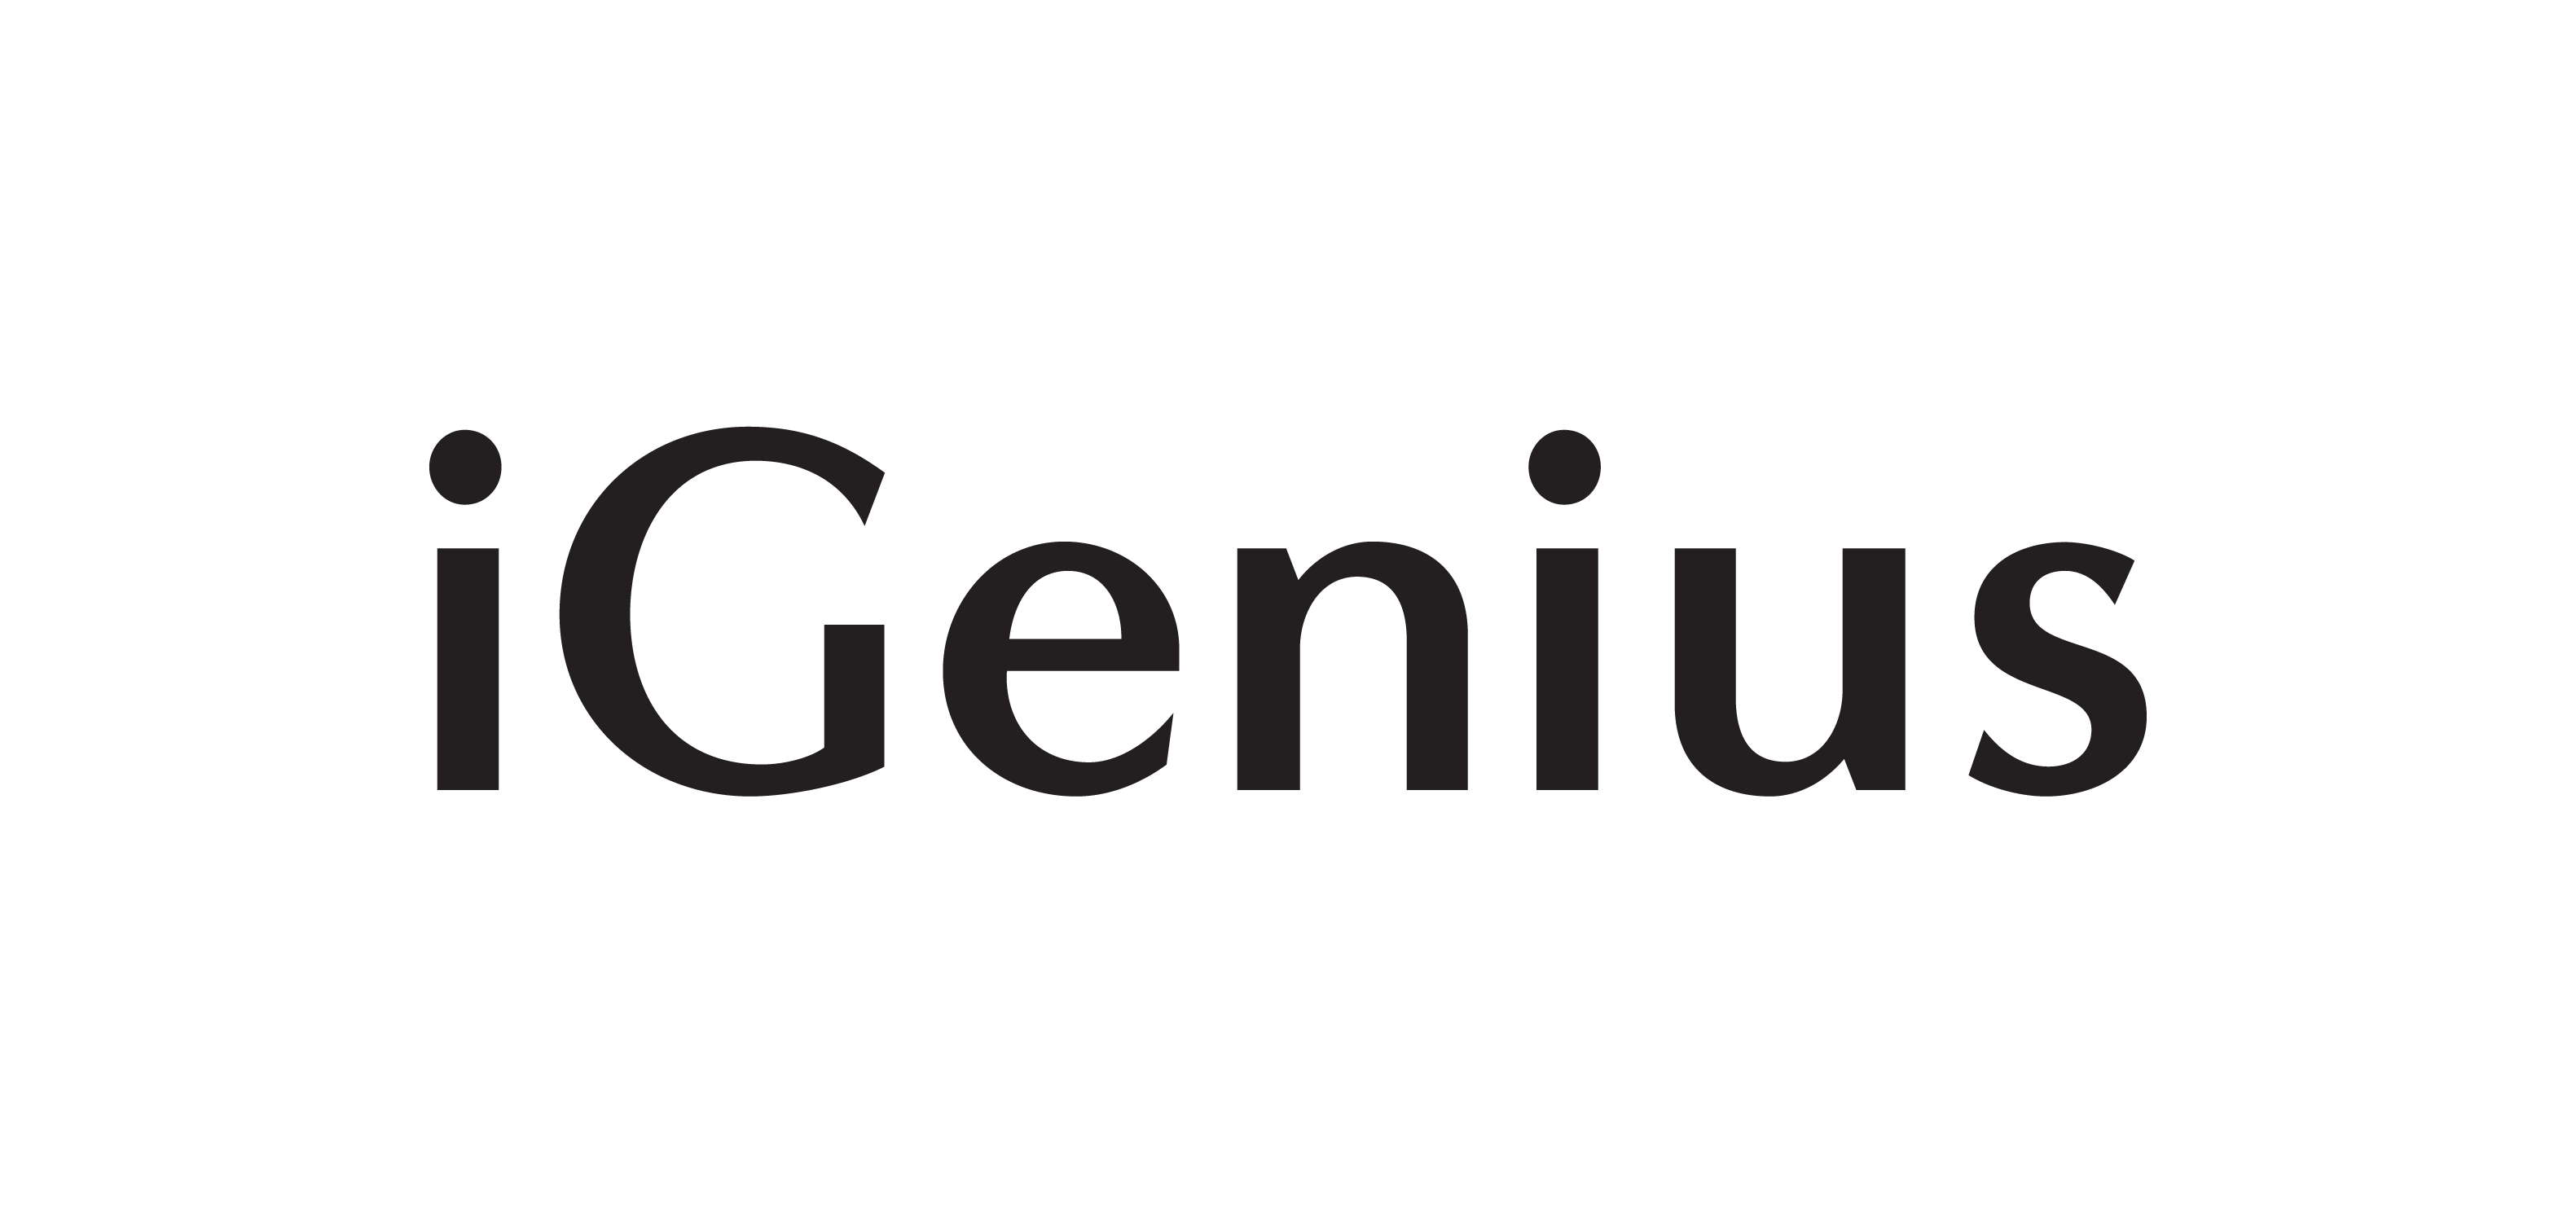 iGenius Logotype